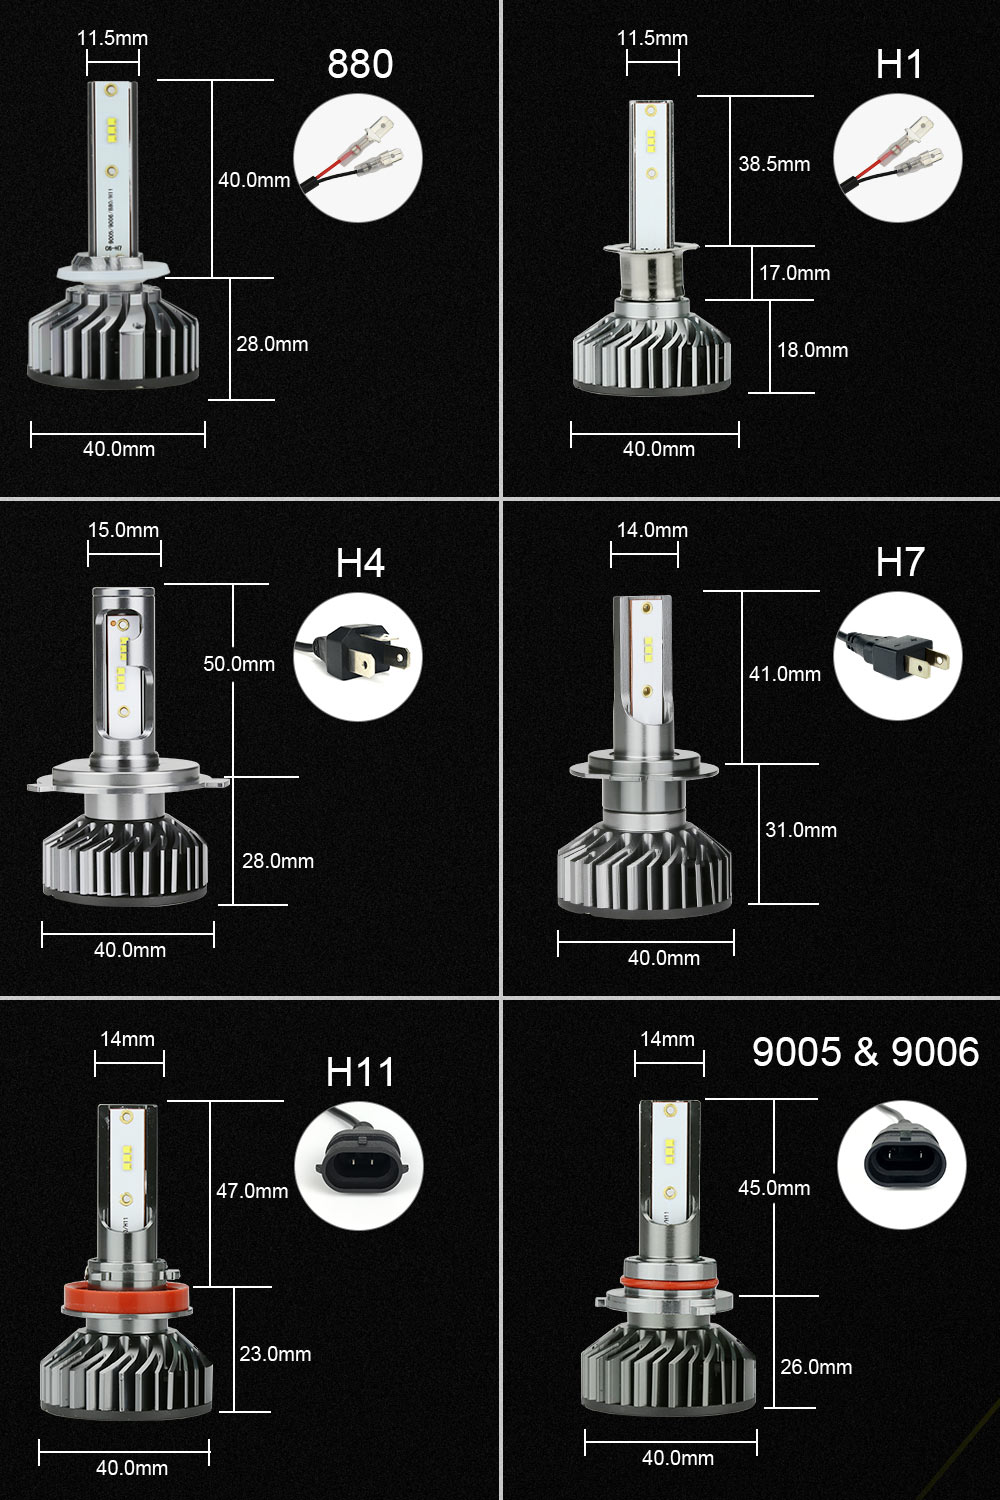 HTB12M7eBZyYBuNkSnfoq6AWgVXa8 Zdatt H7 LED H4 H1 LED H11 H8 9005 9006 H9 HB3 Canbus Headlight Bulb Car Light 12000LM 100W 6000K 12V Auto Lamp No Radio Noise